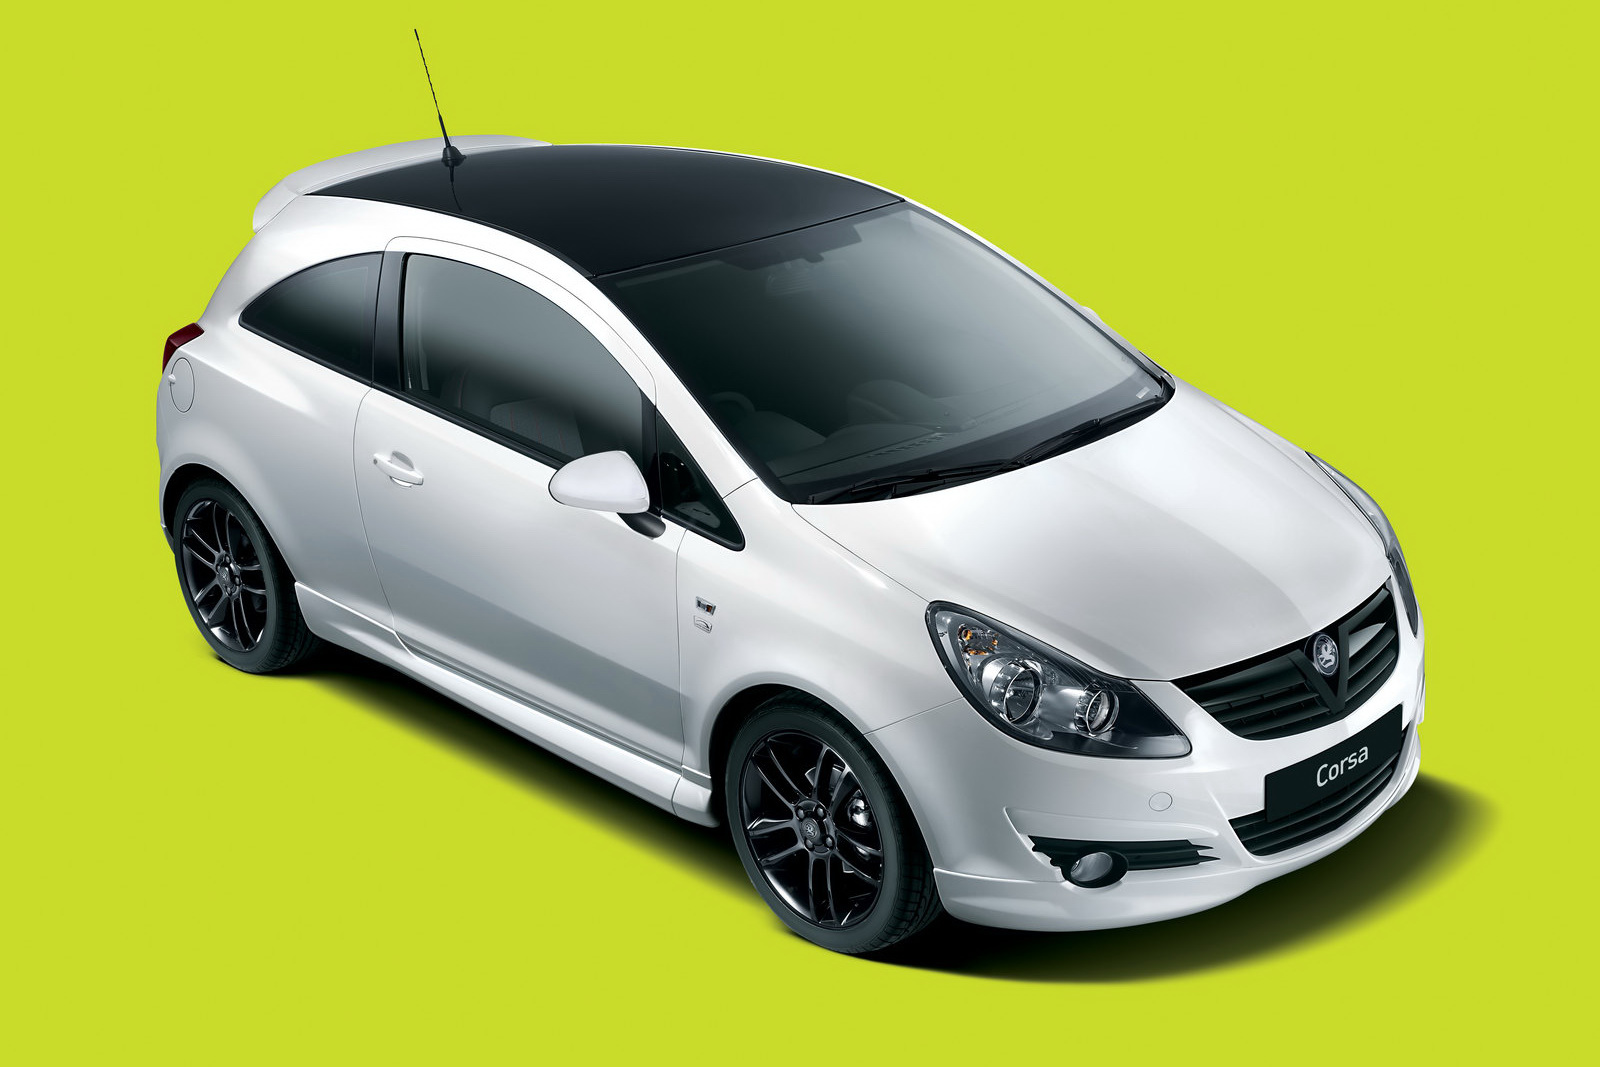 black white limited edition part ii vauxhall corsa. Black Bedroom Furniture Sets. Home Design Ideas